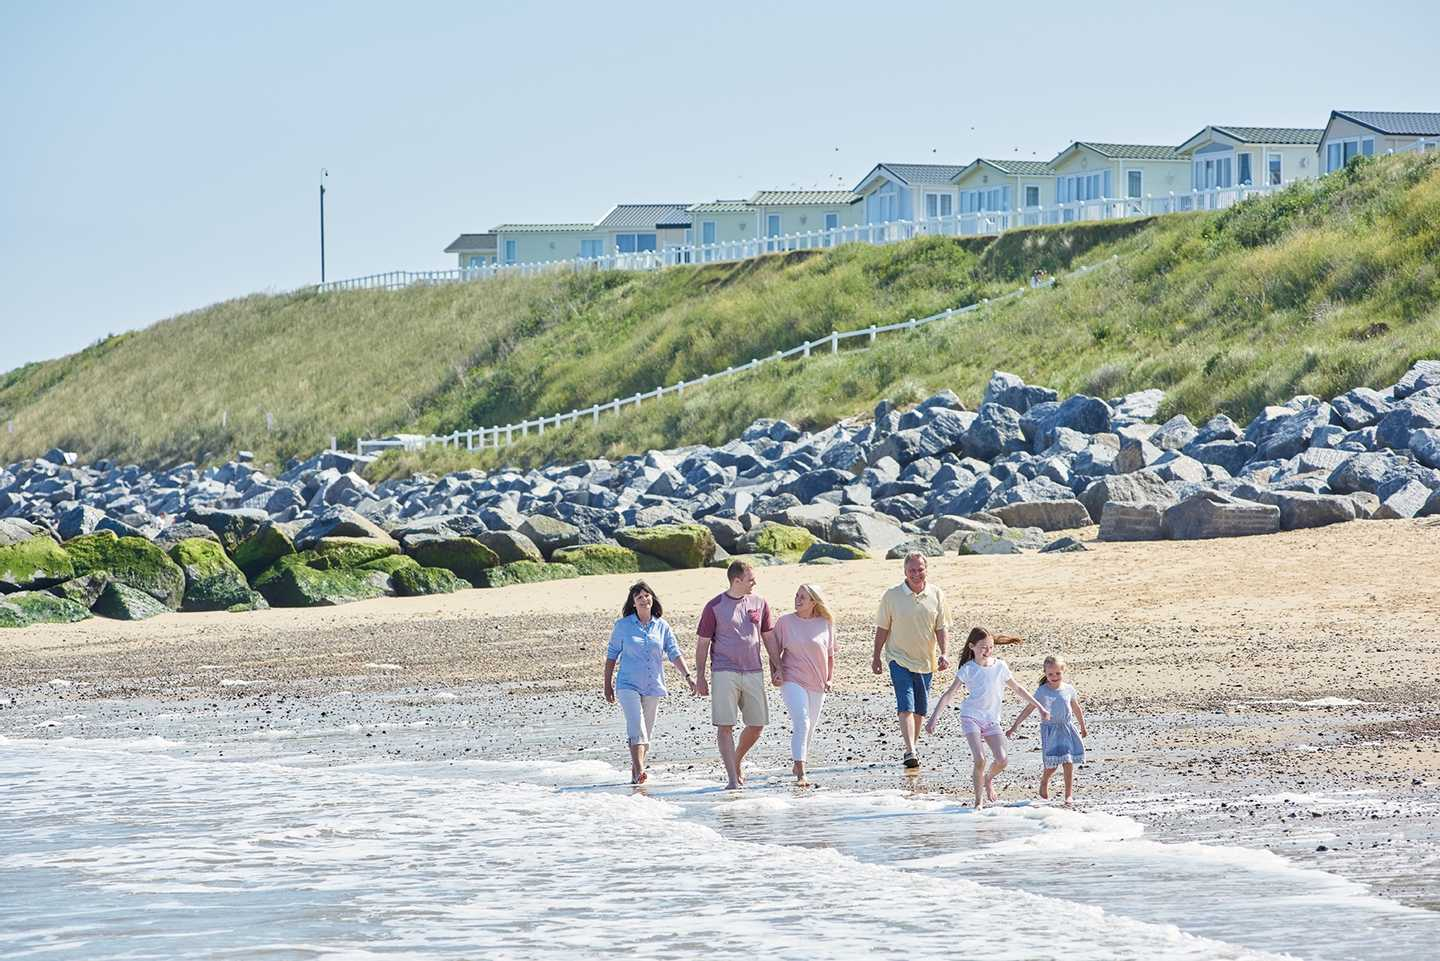 A family strolling along the sandy Norfolk beach as the sea laps at their feet. Caravans are overlooking them at the top of the dunes.